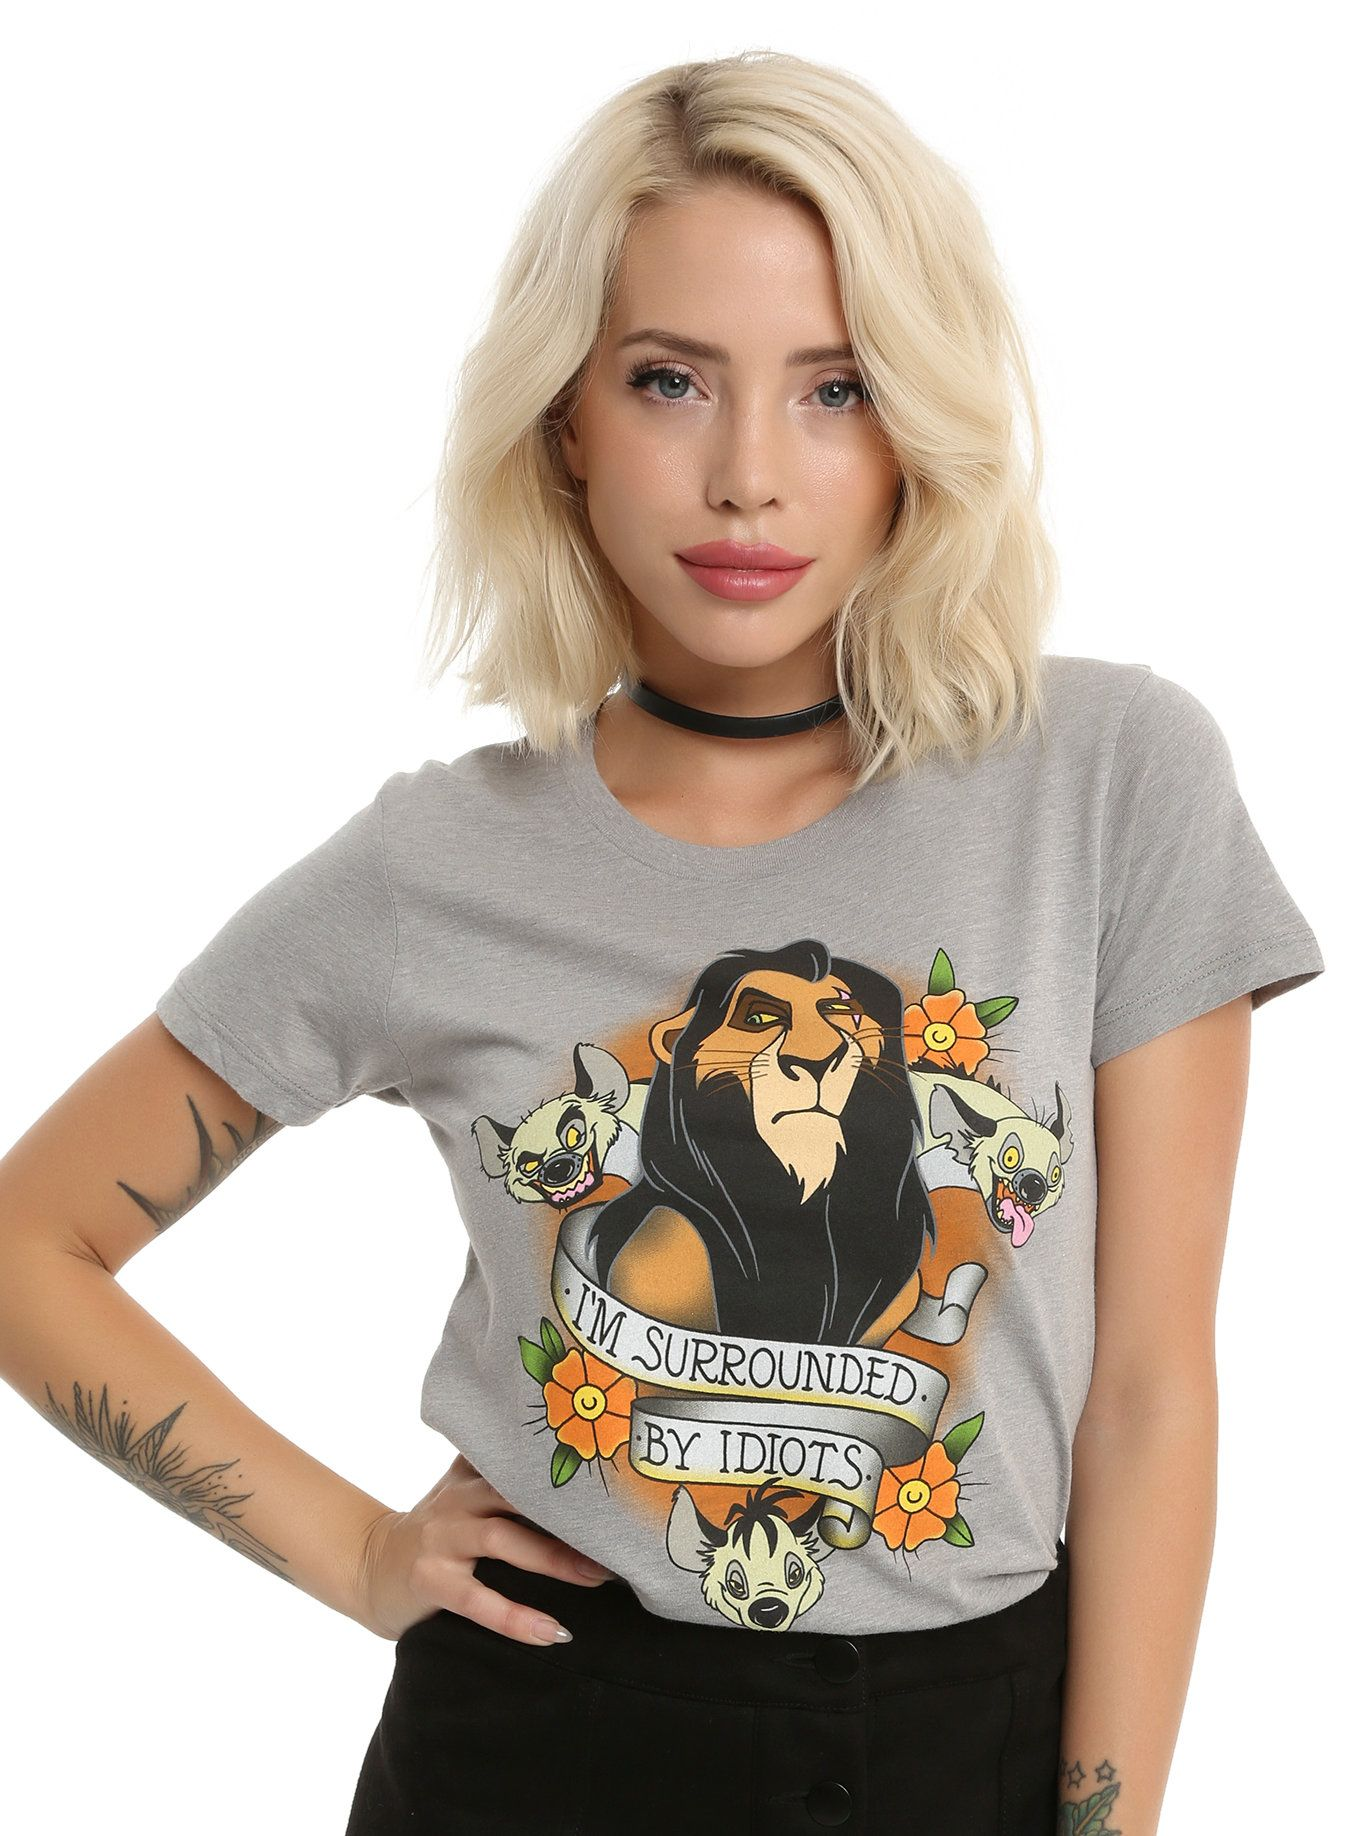 Disney The Lion King Scar Surrounded By Idiots Girls T Shirt Girls Tshirts Cool Girl Outfits Clothes [ 1836 x 1360 Pixel ]